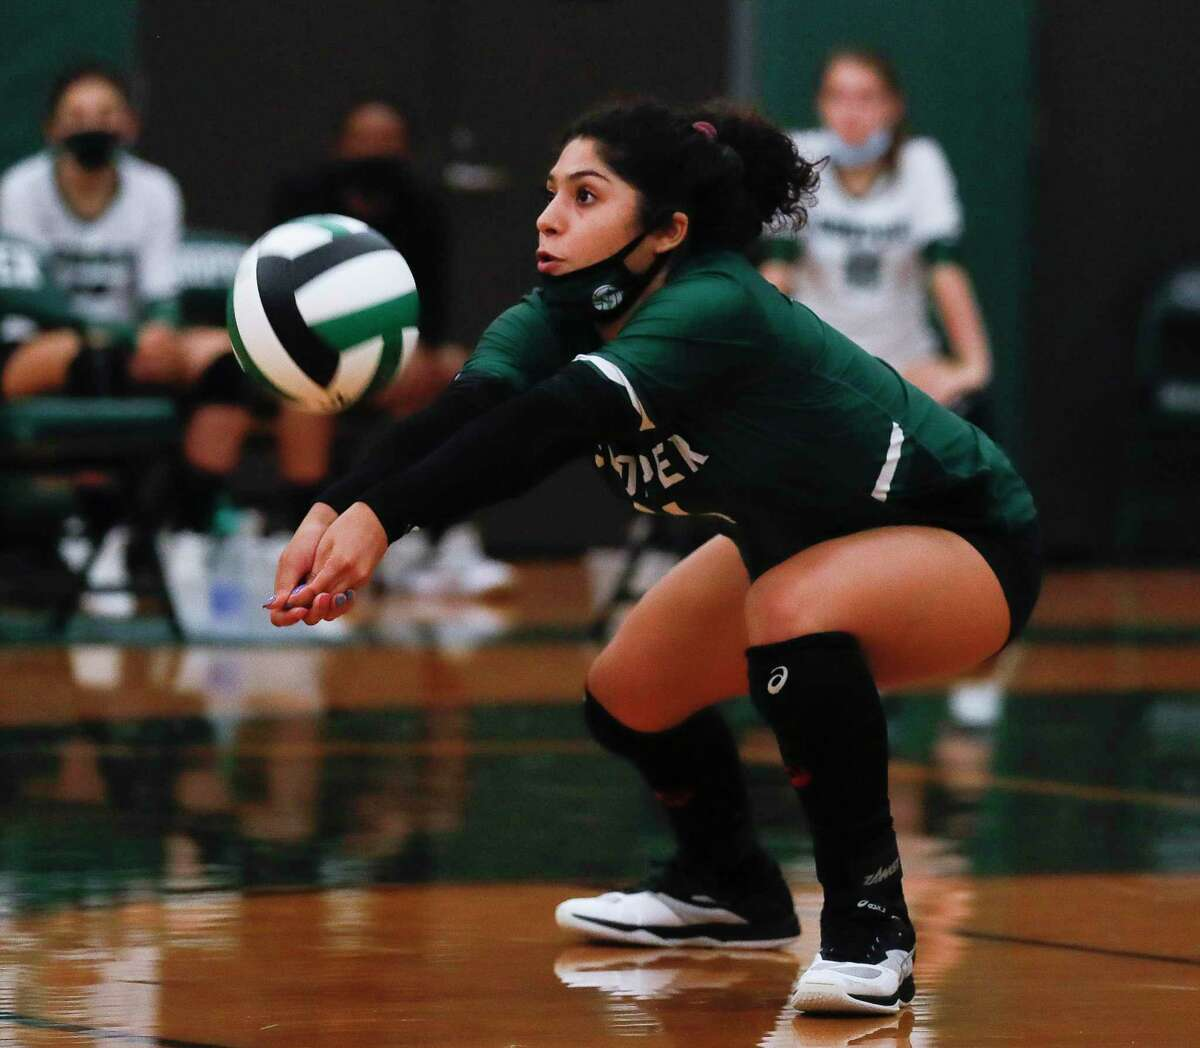 John Cooper libero Laura Weatherford (14) digs during the first set of a non-district high school volleyball match at The John Cooper School, Wednesday, Sept. 30, 2020, in The Woodlands